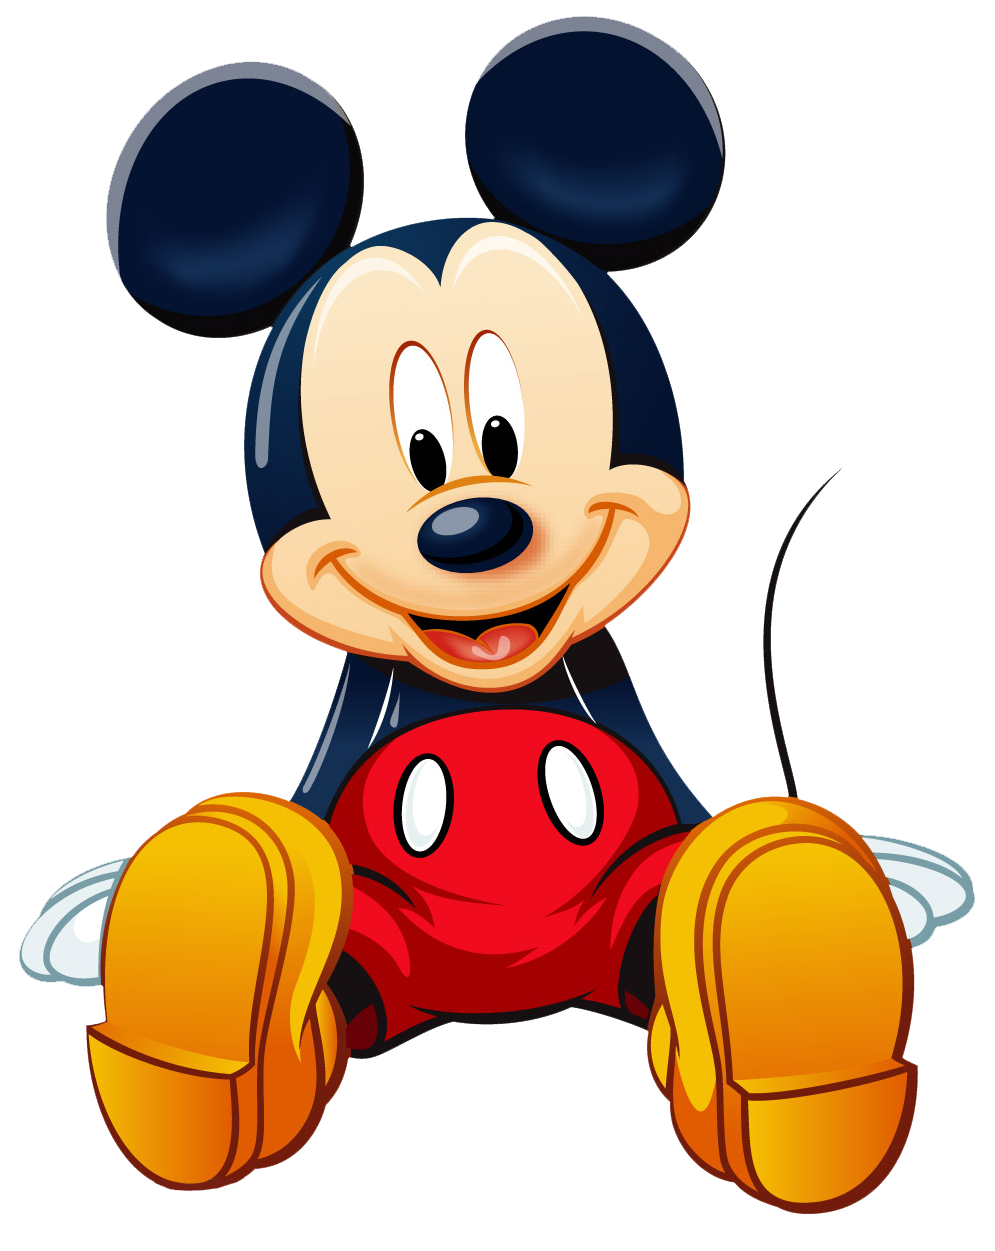 Mouse png clipart mart. Mickey .png image transparent